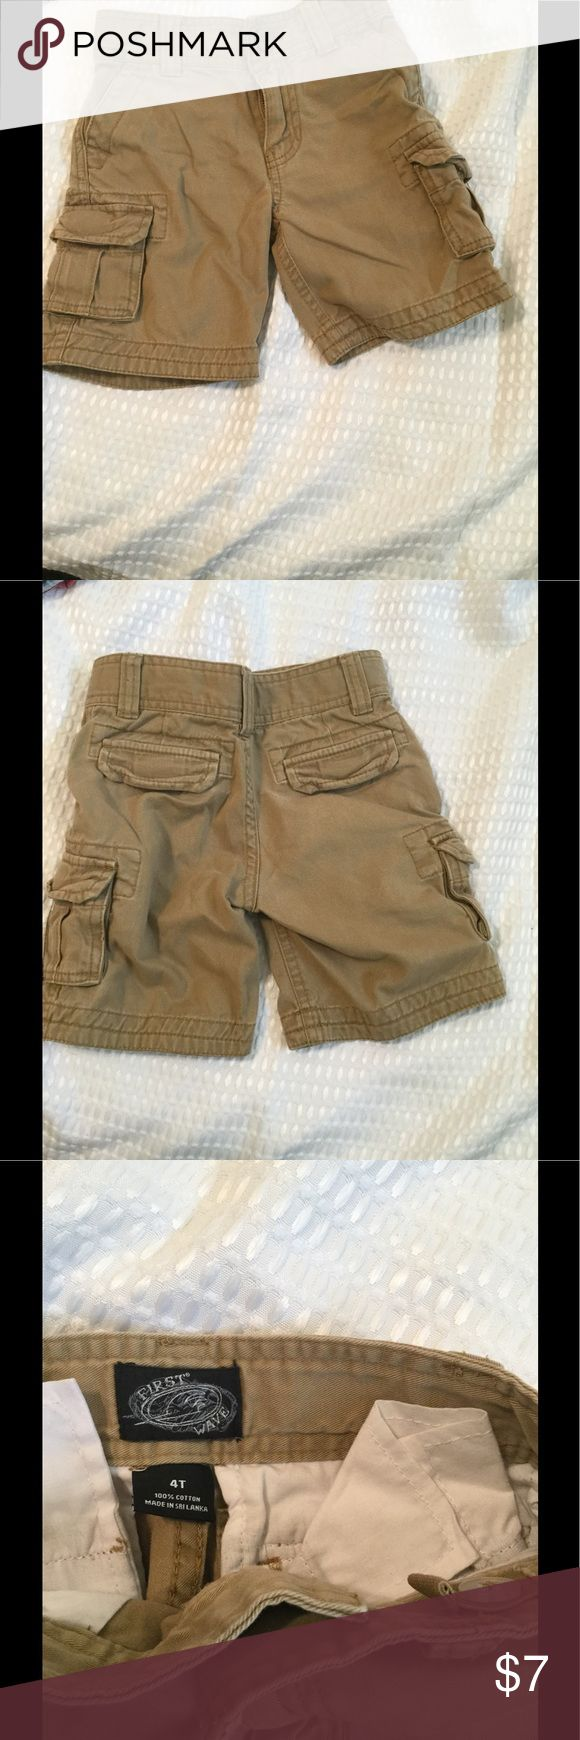 Boys cargo shorts 4T Nice cargo shorts for boys for spring/summer.  No stains, rip or tears. First Wave Bottoms Shorts